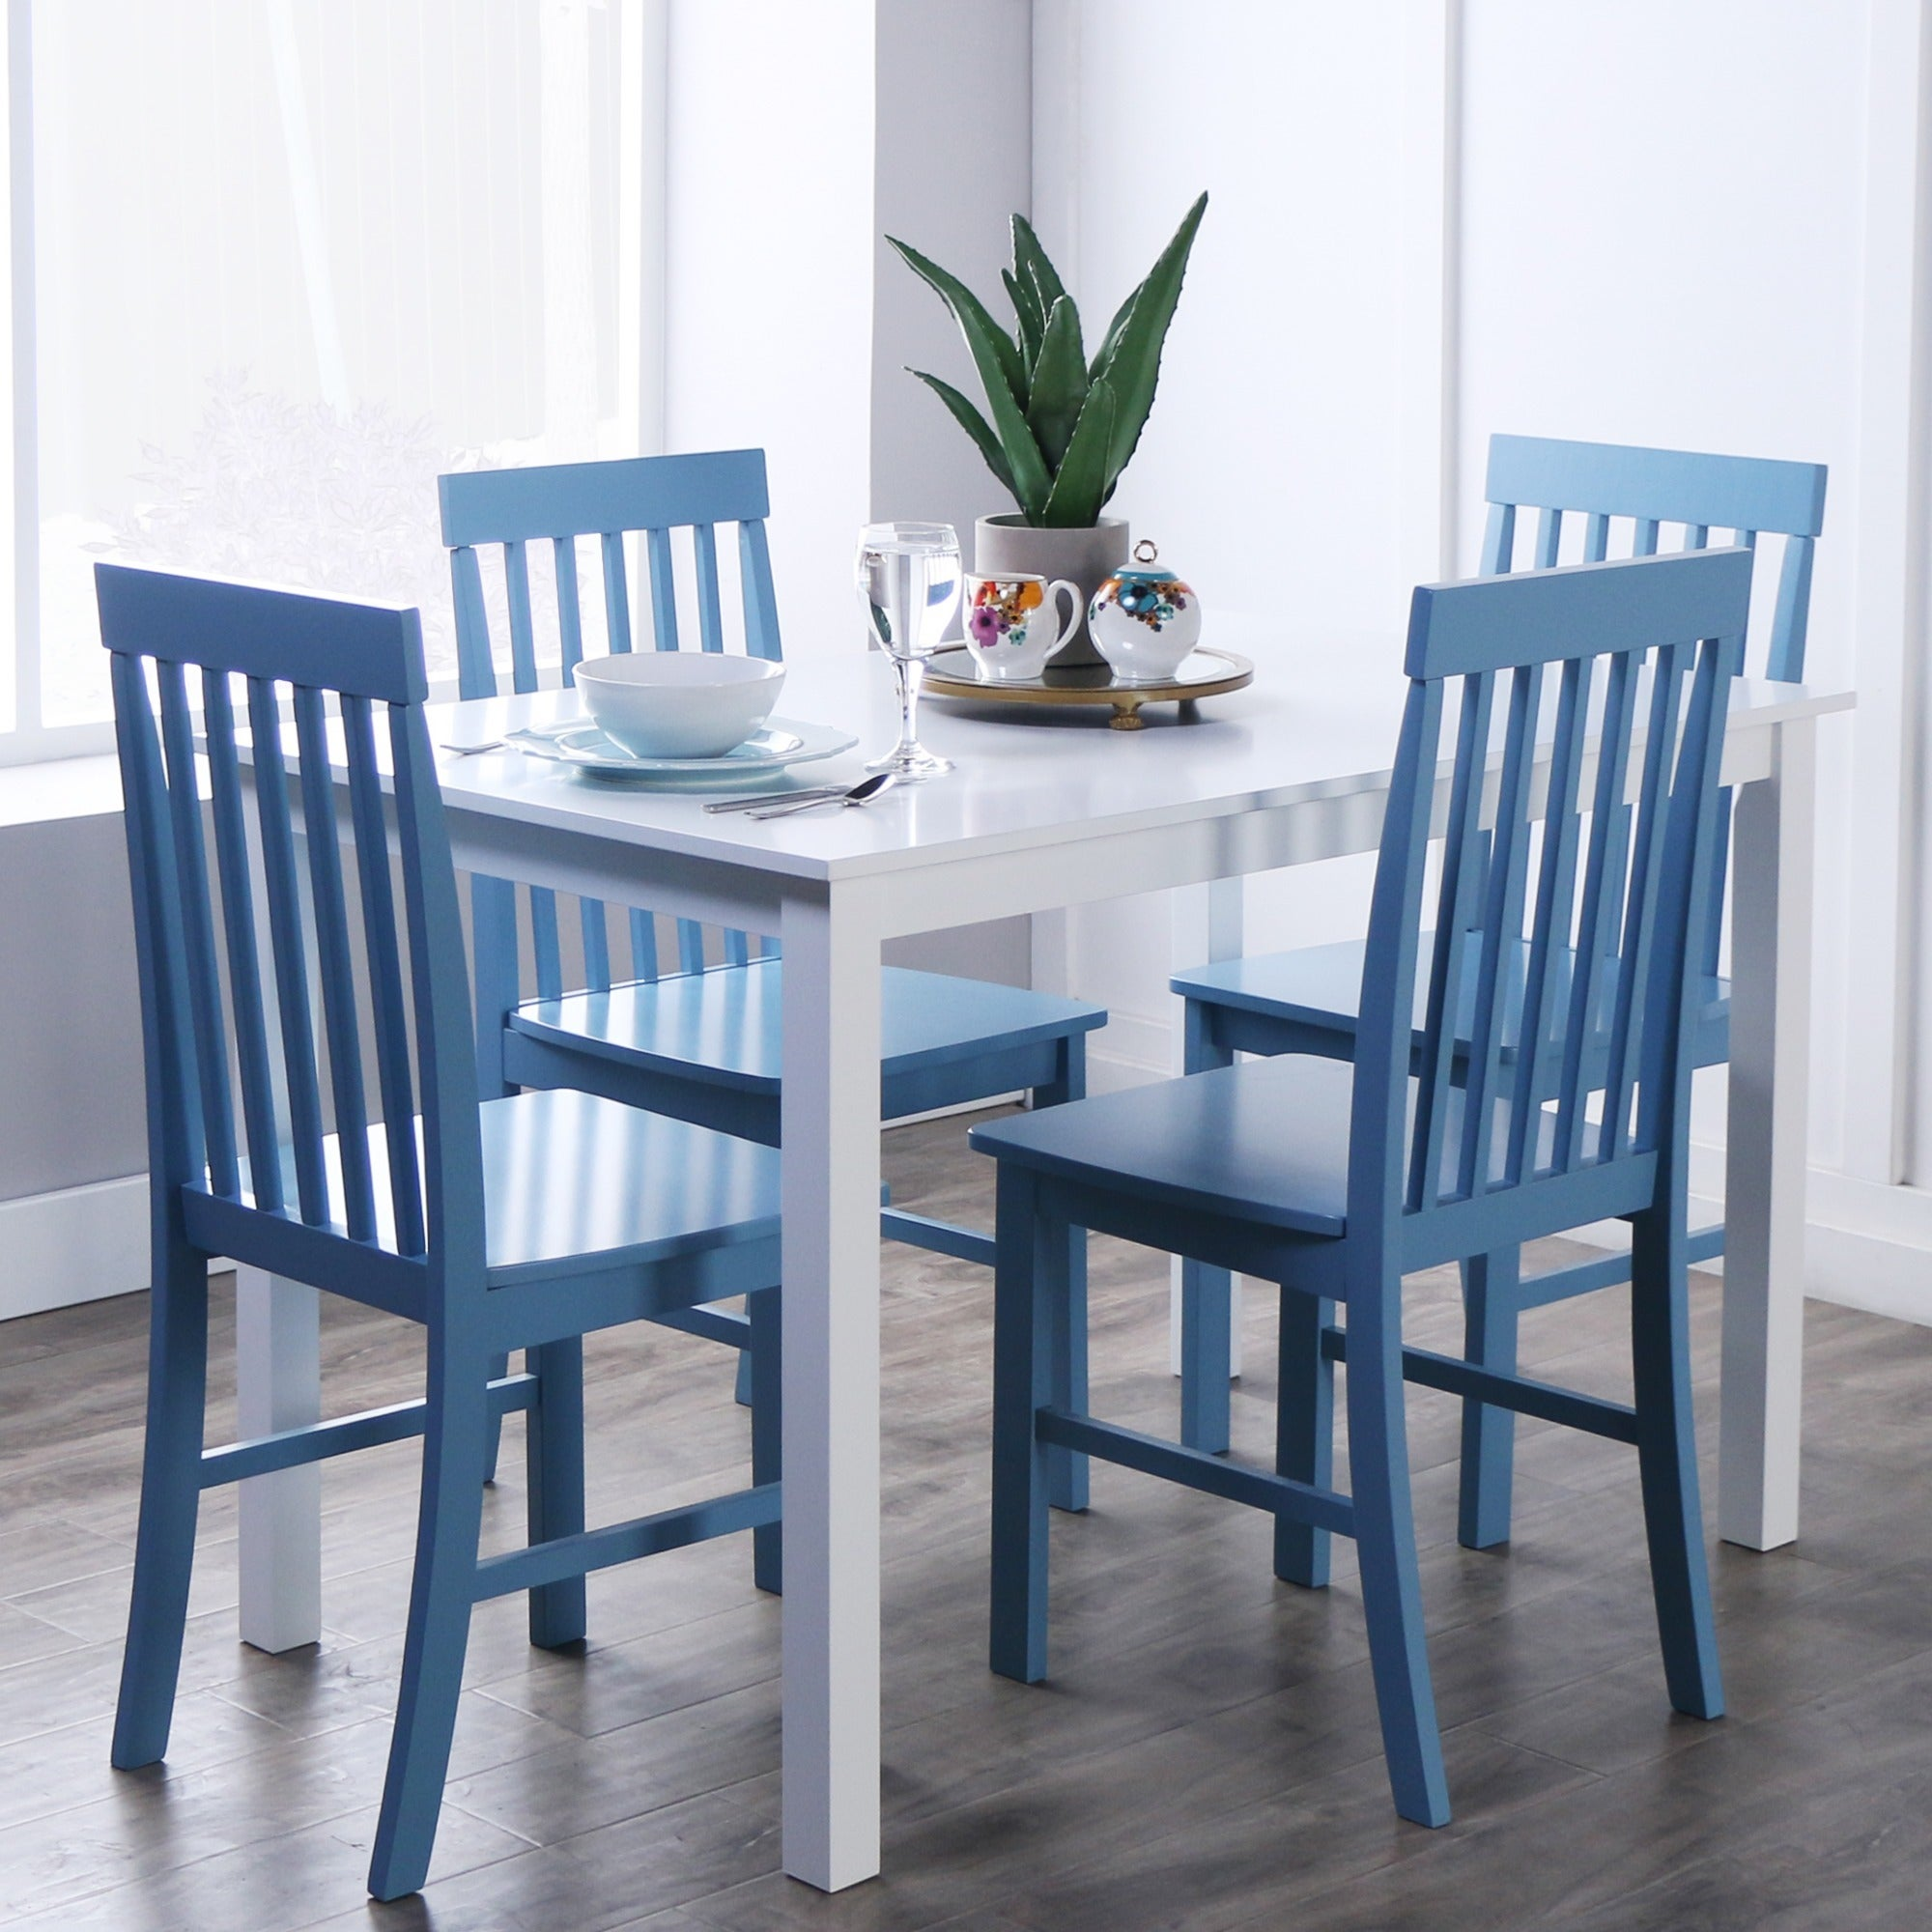 Havenside Home 5-piece White and Powder Blue Dining Set - Free ...